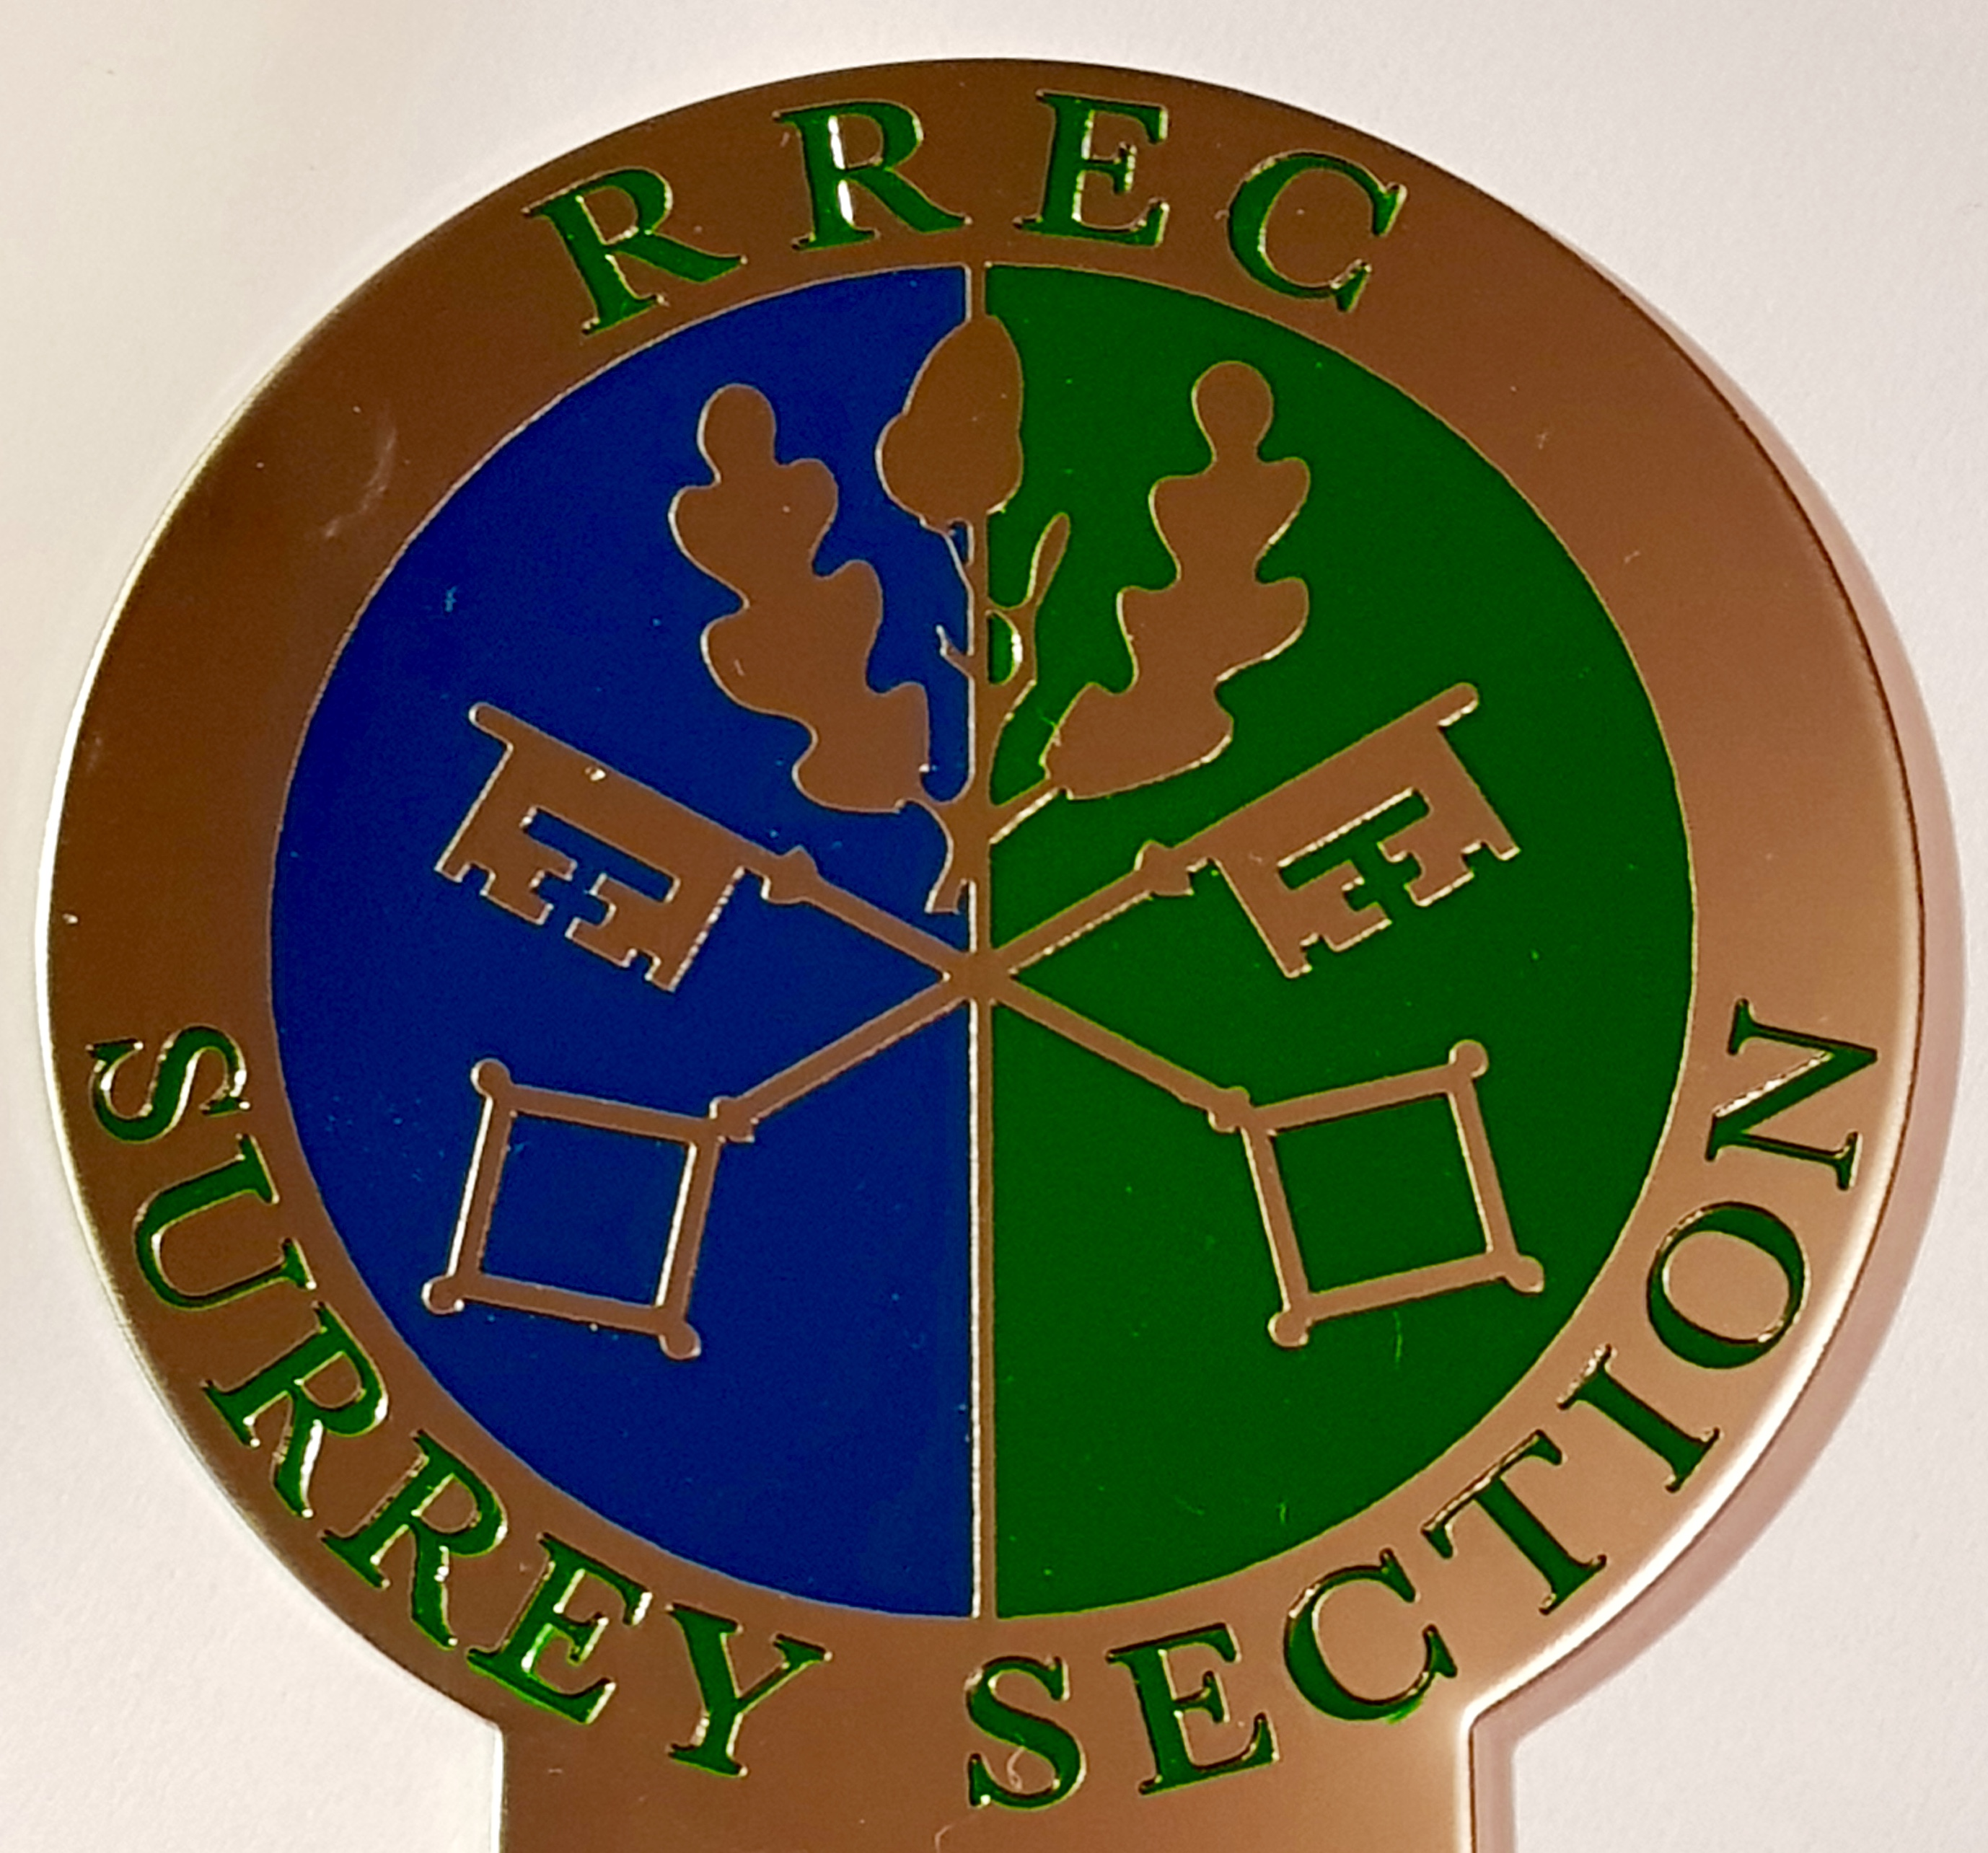 RREC-Surrey Section